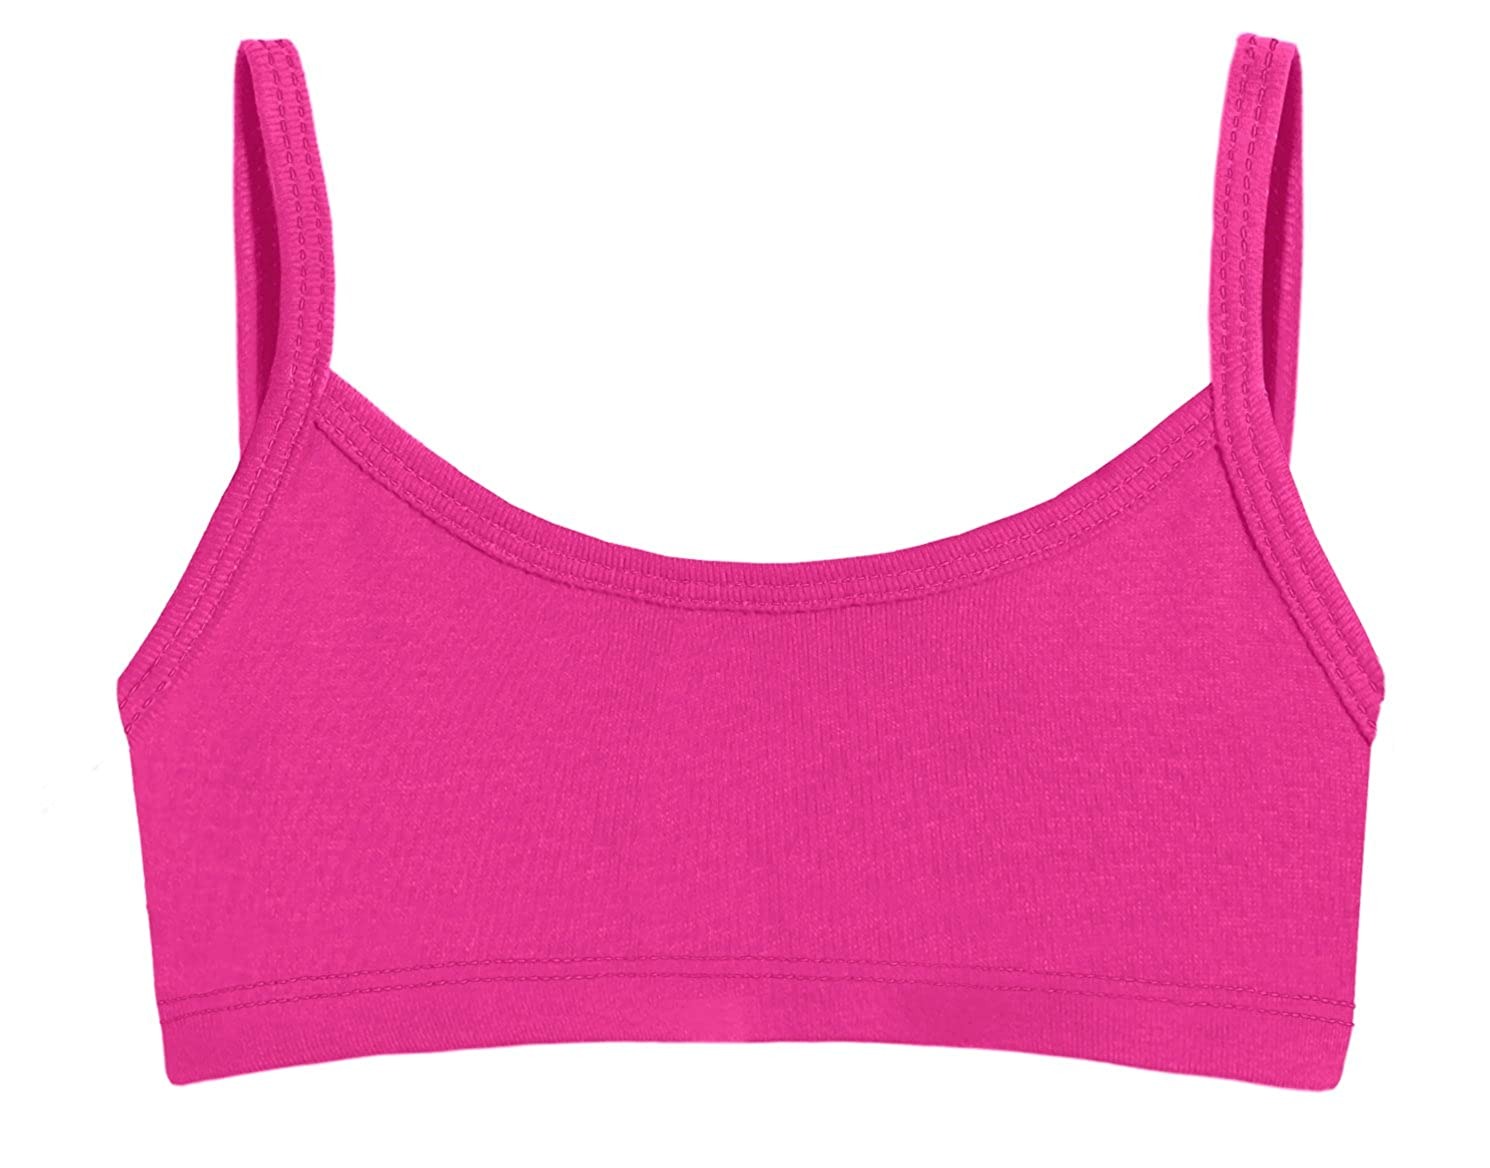 City Threads Girls Training Bras in All Cotton Starter Bras for Young and Little Girls CT-TRAININGBRA